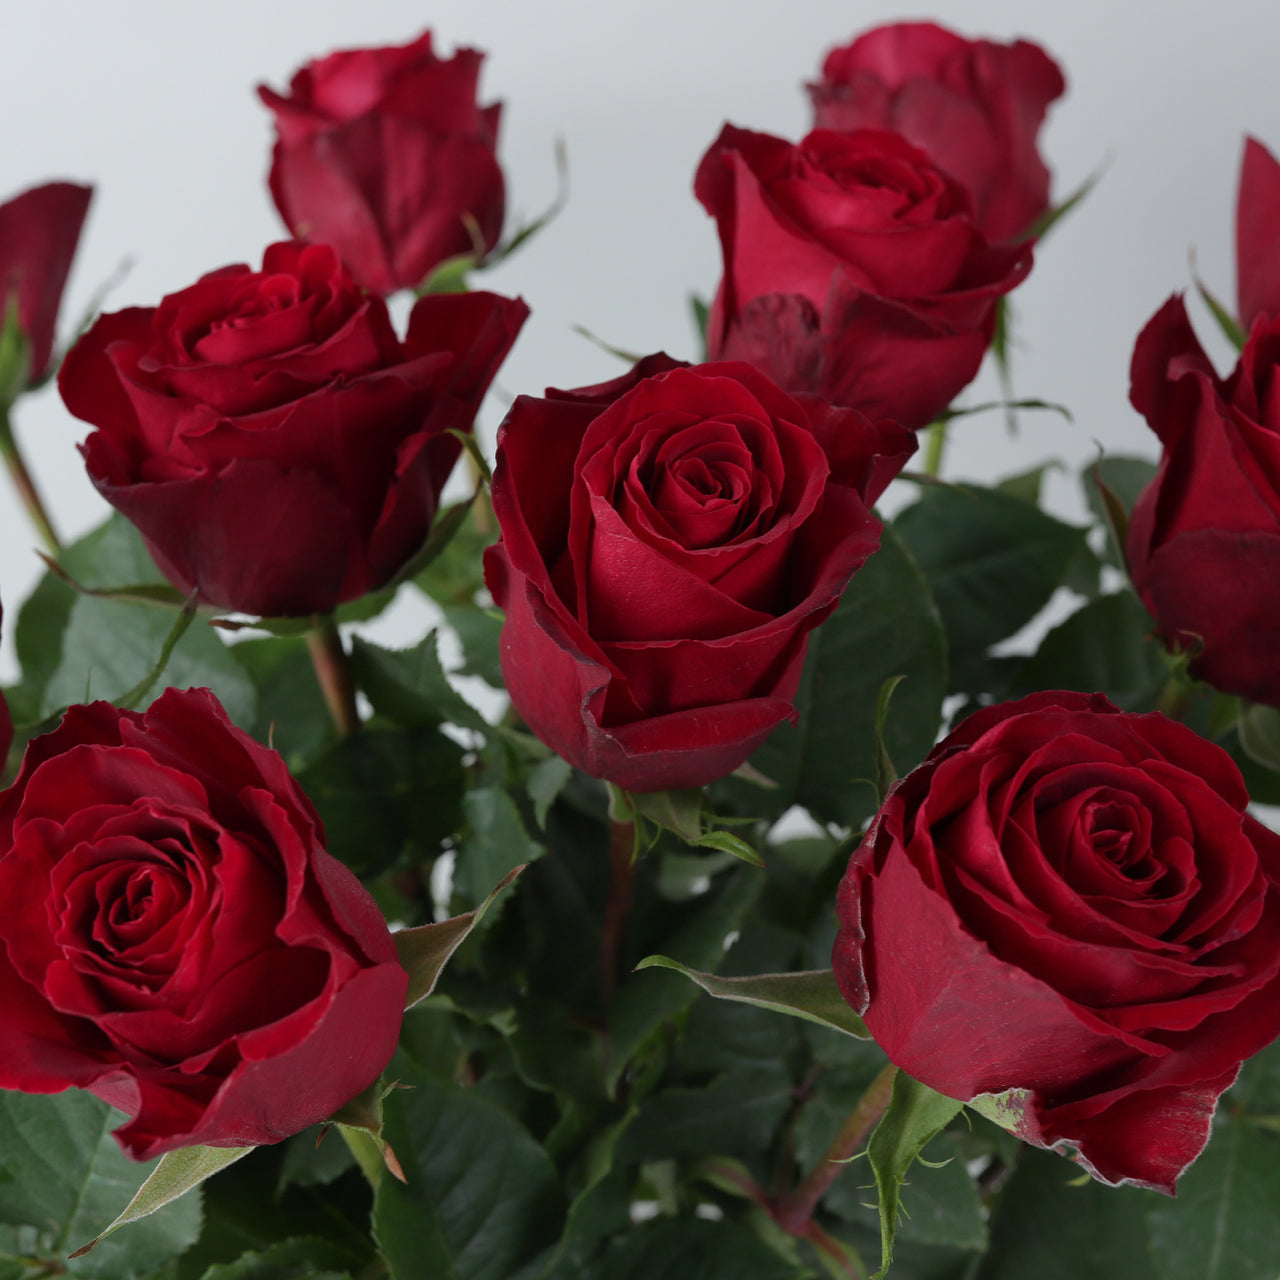 A Dozen Fairtrade Red Roses